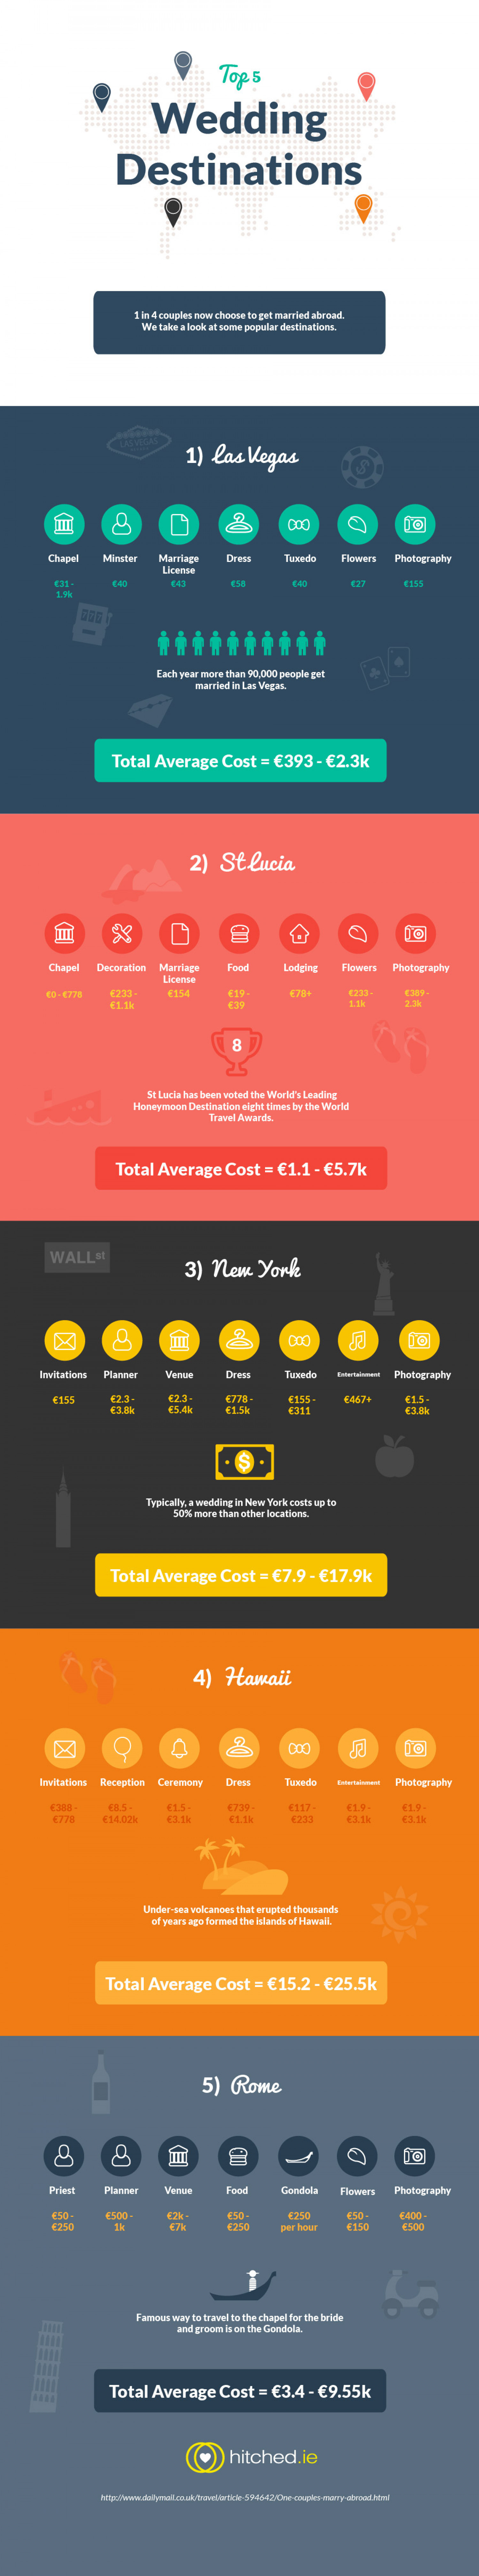 Top 5 Wedding Destinations Infographic